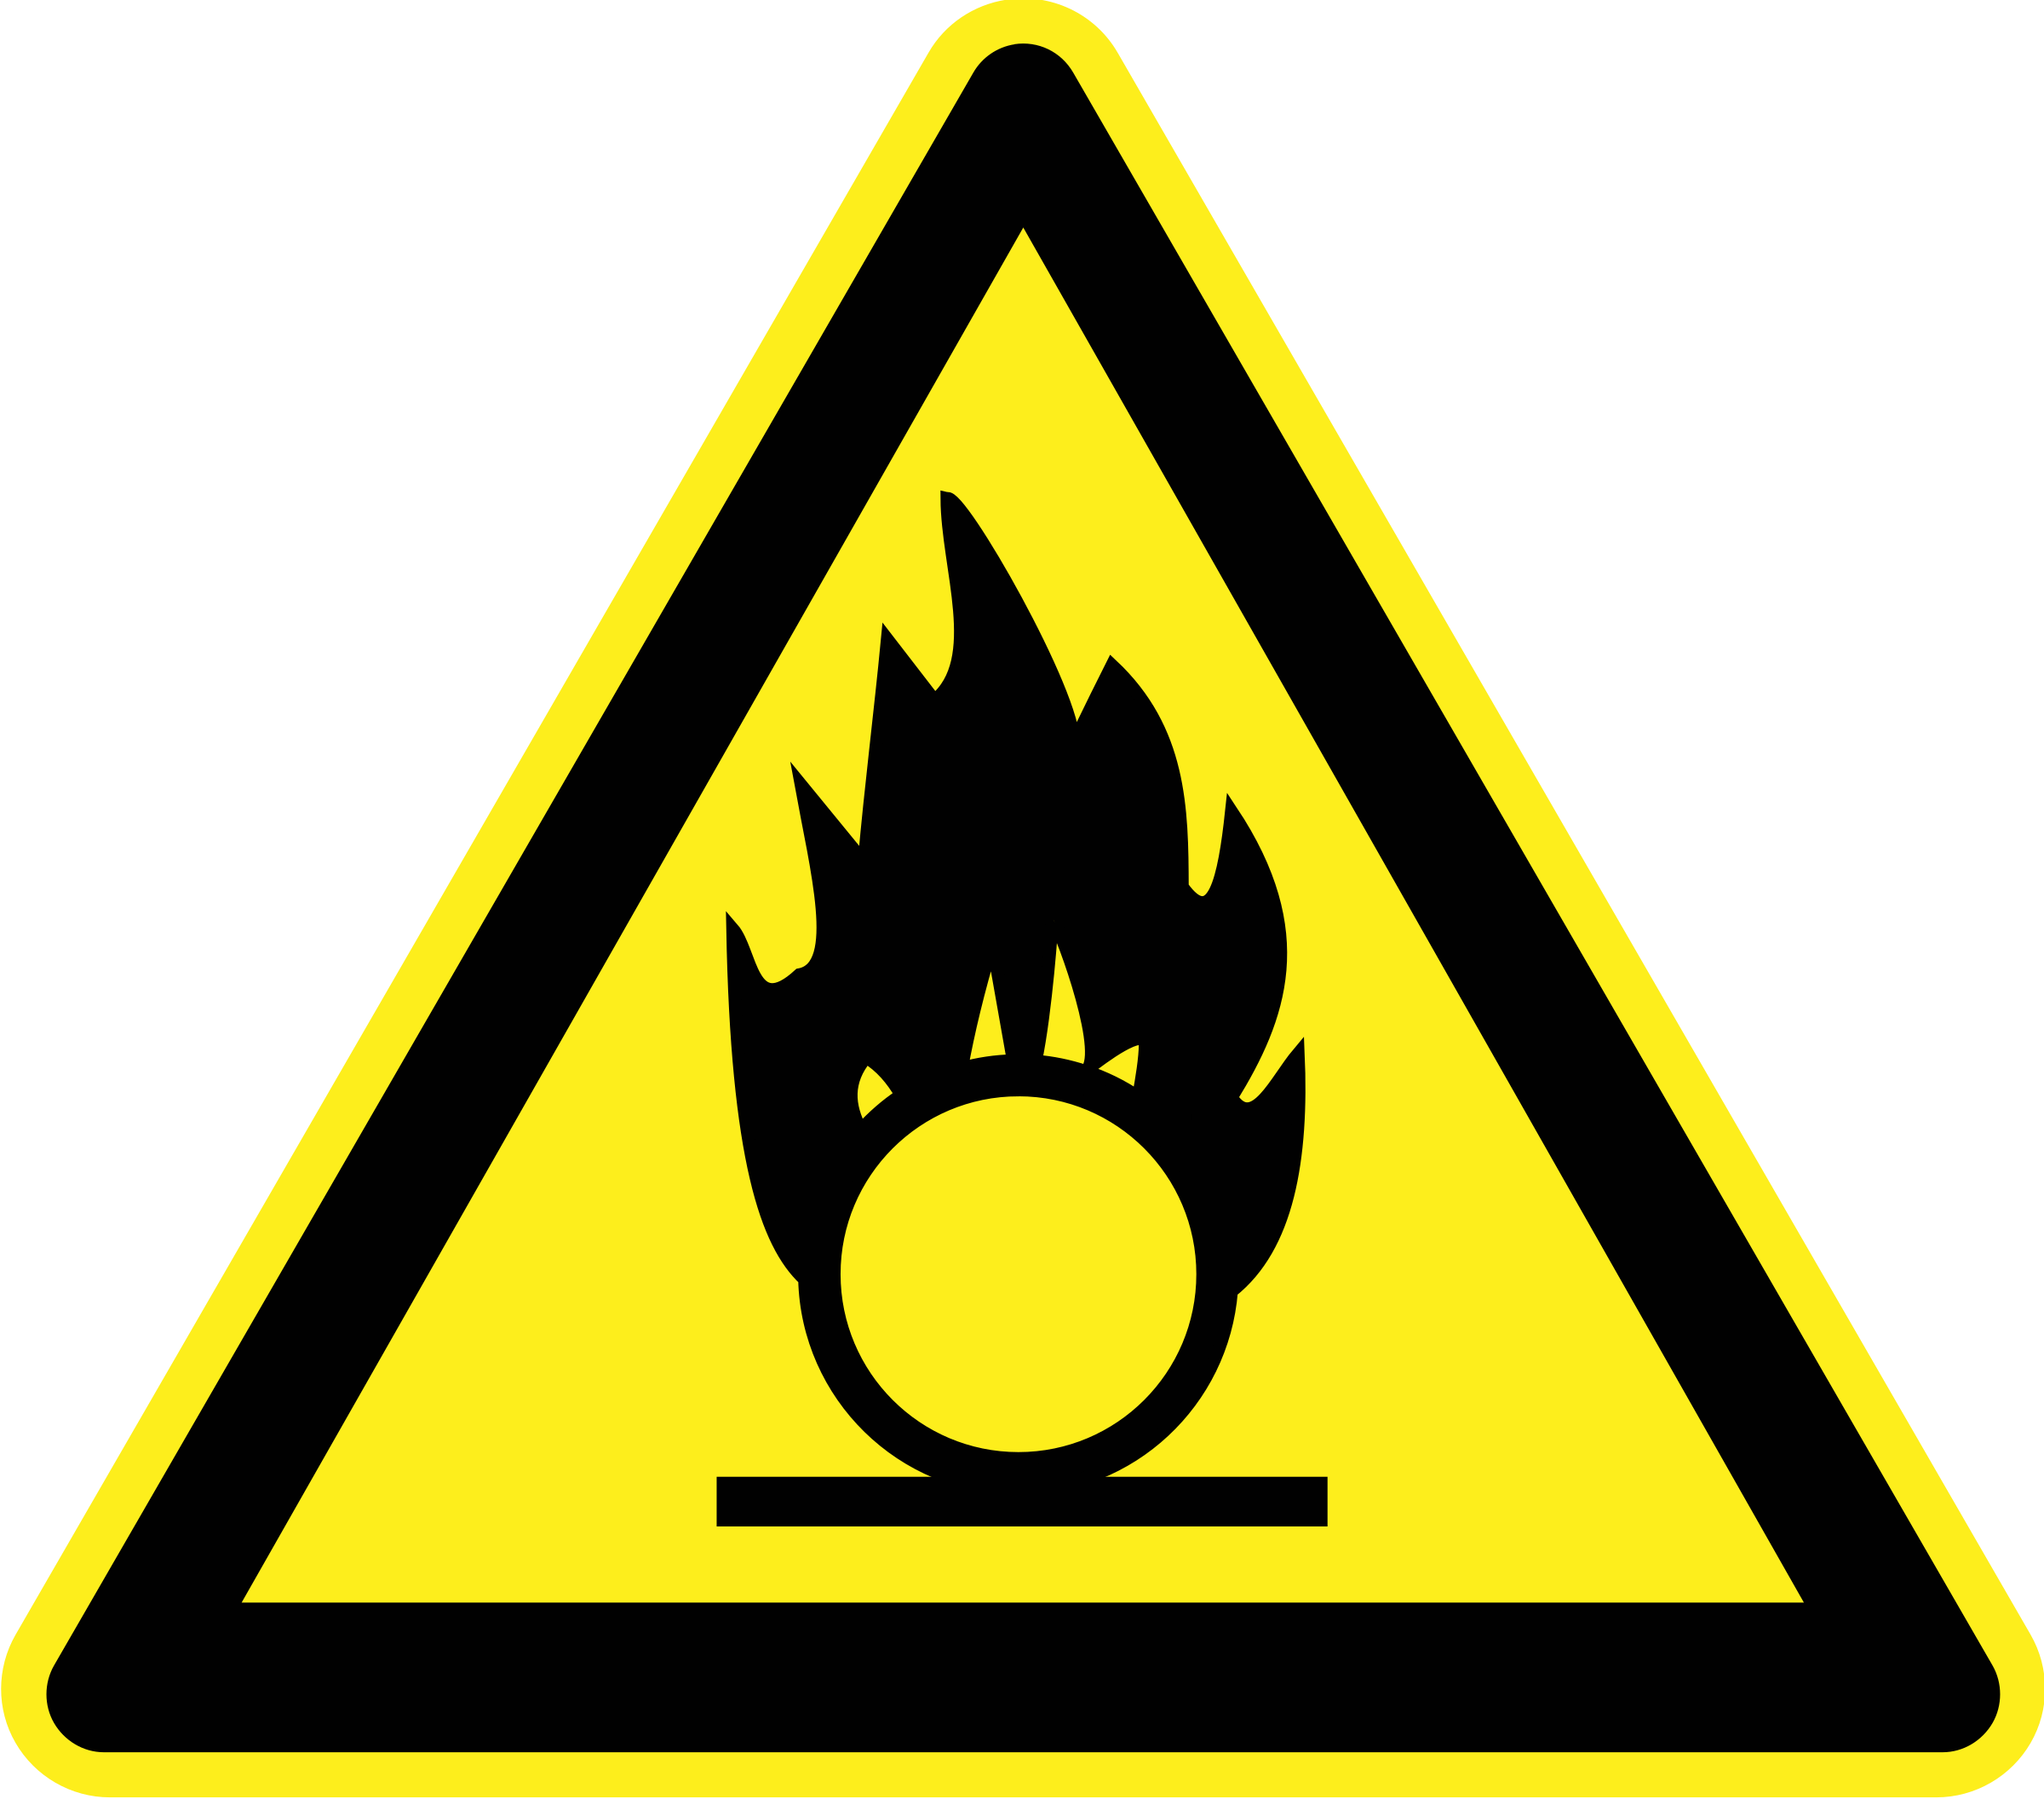 Fire Hazard Warning Sign by h0us3s